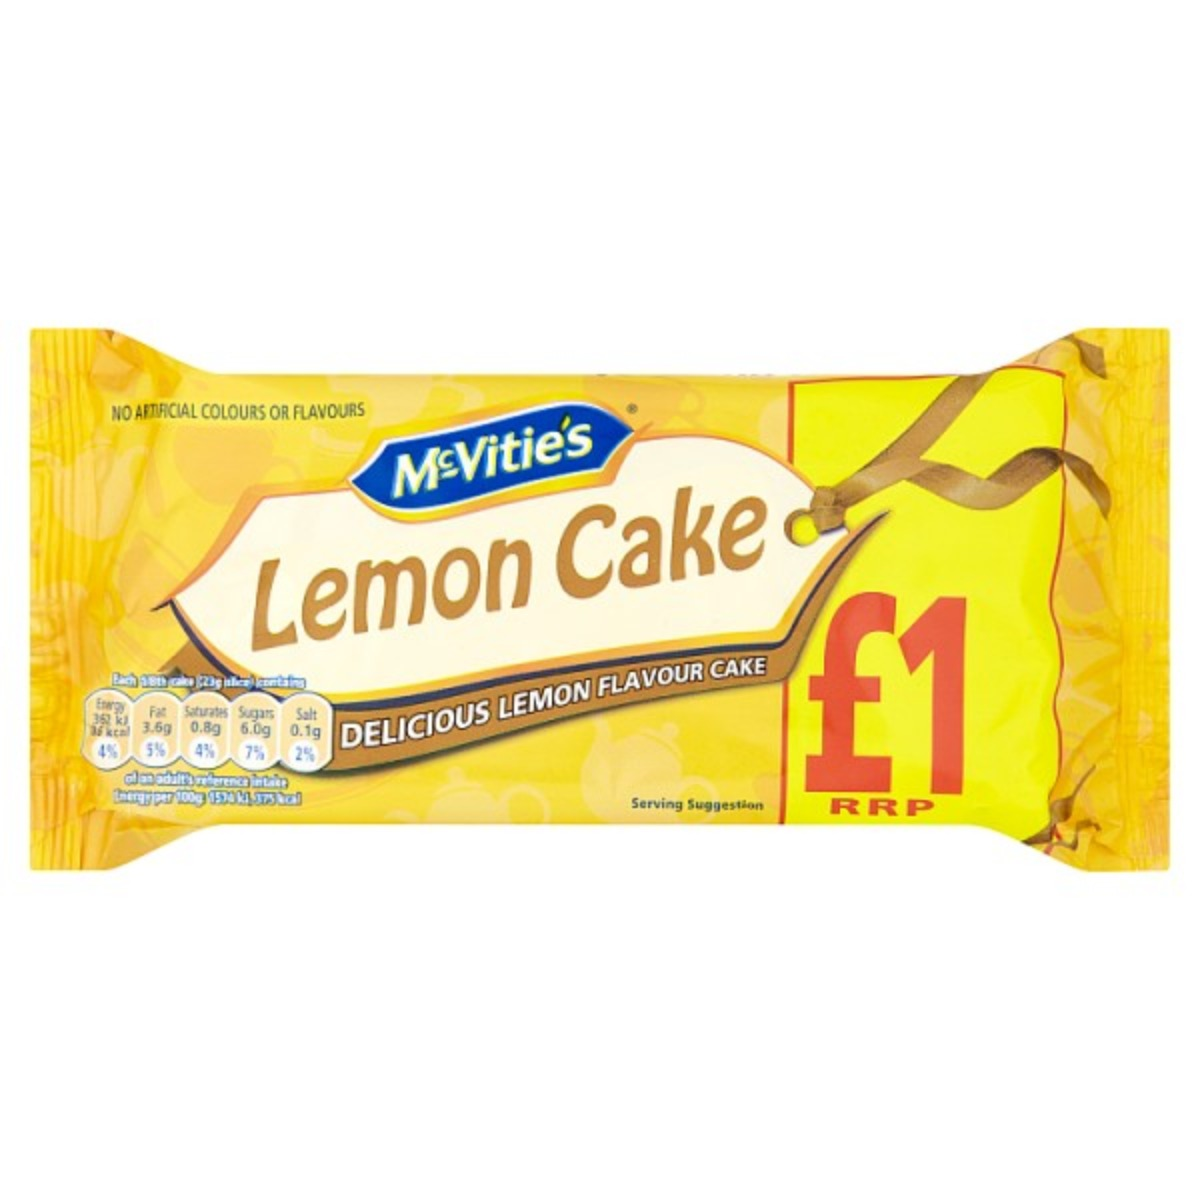 Mcvities Lemon Cake 1x185g